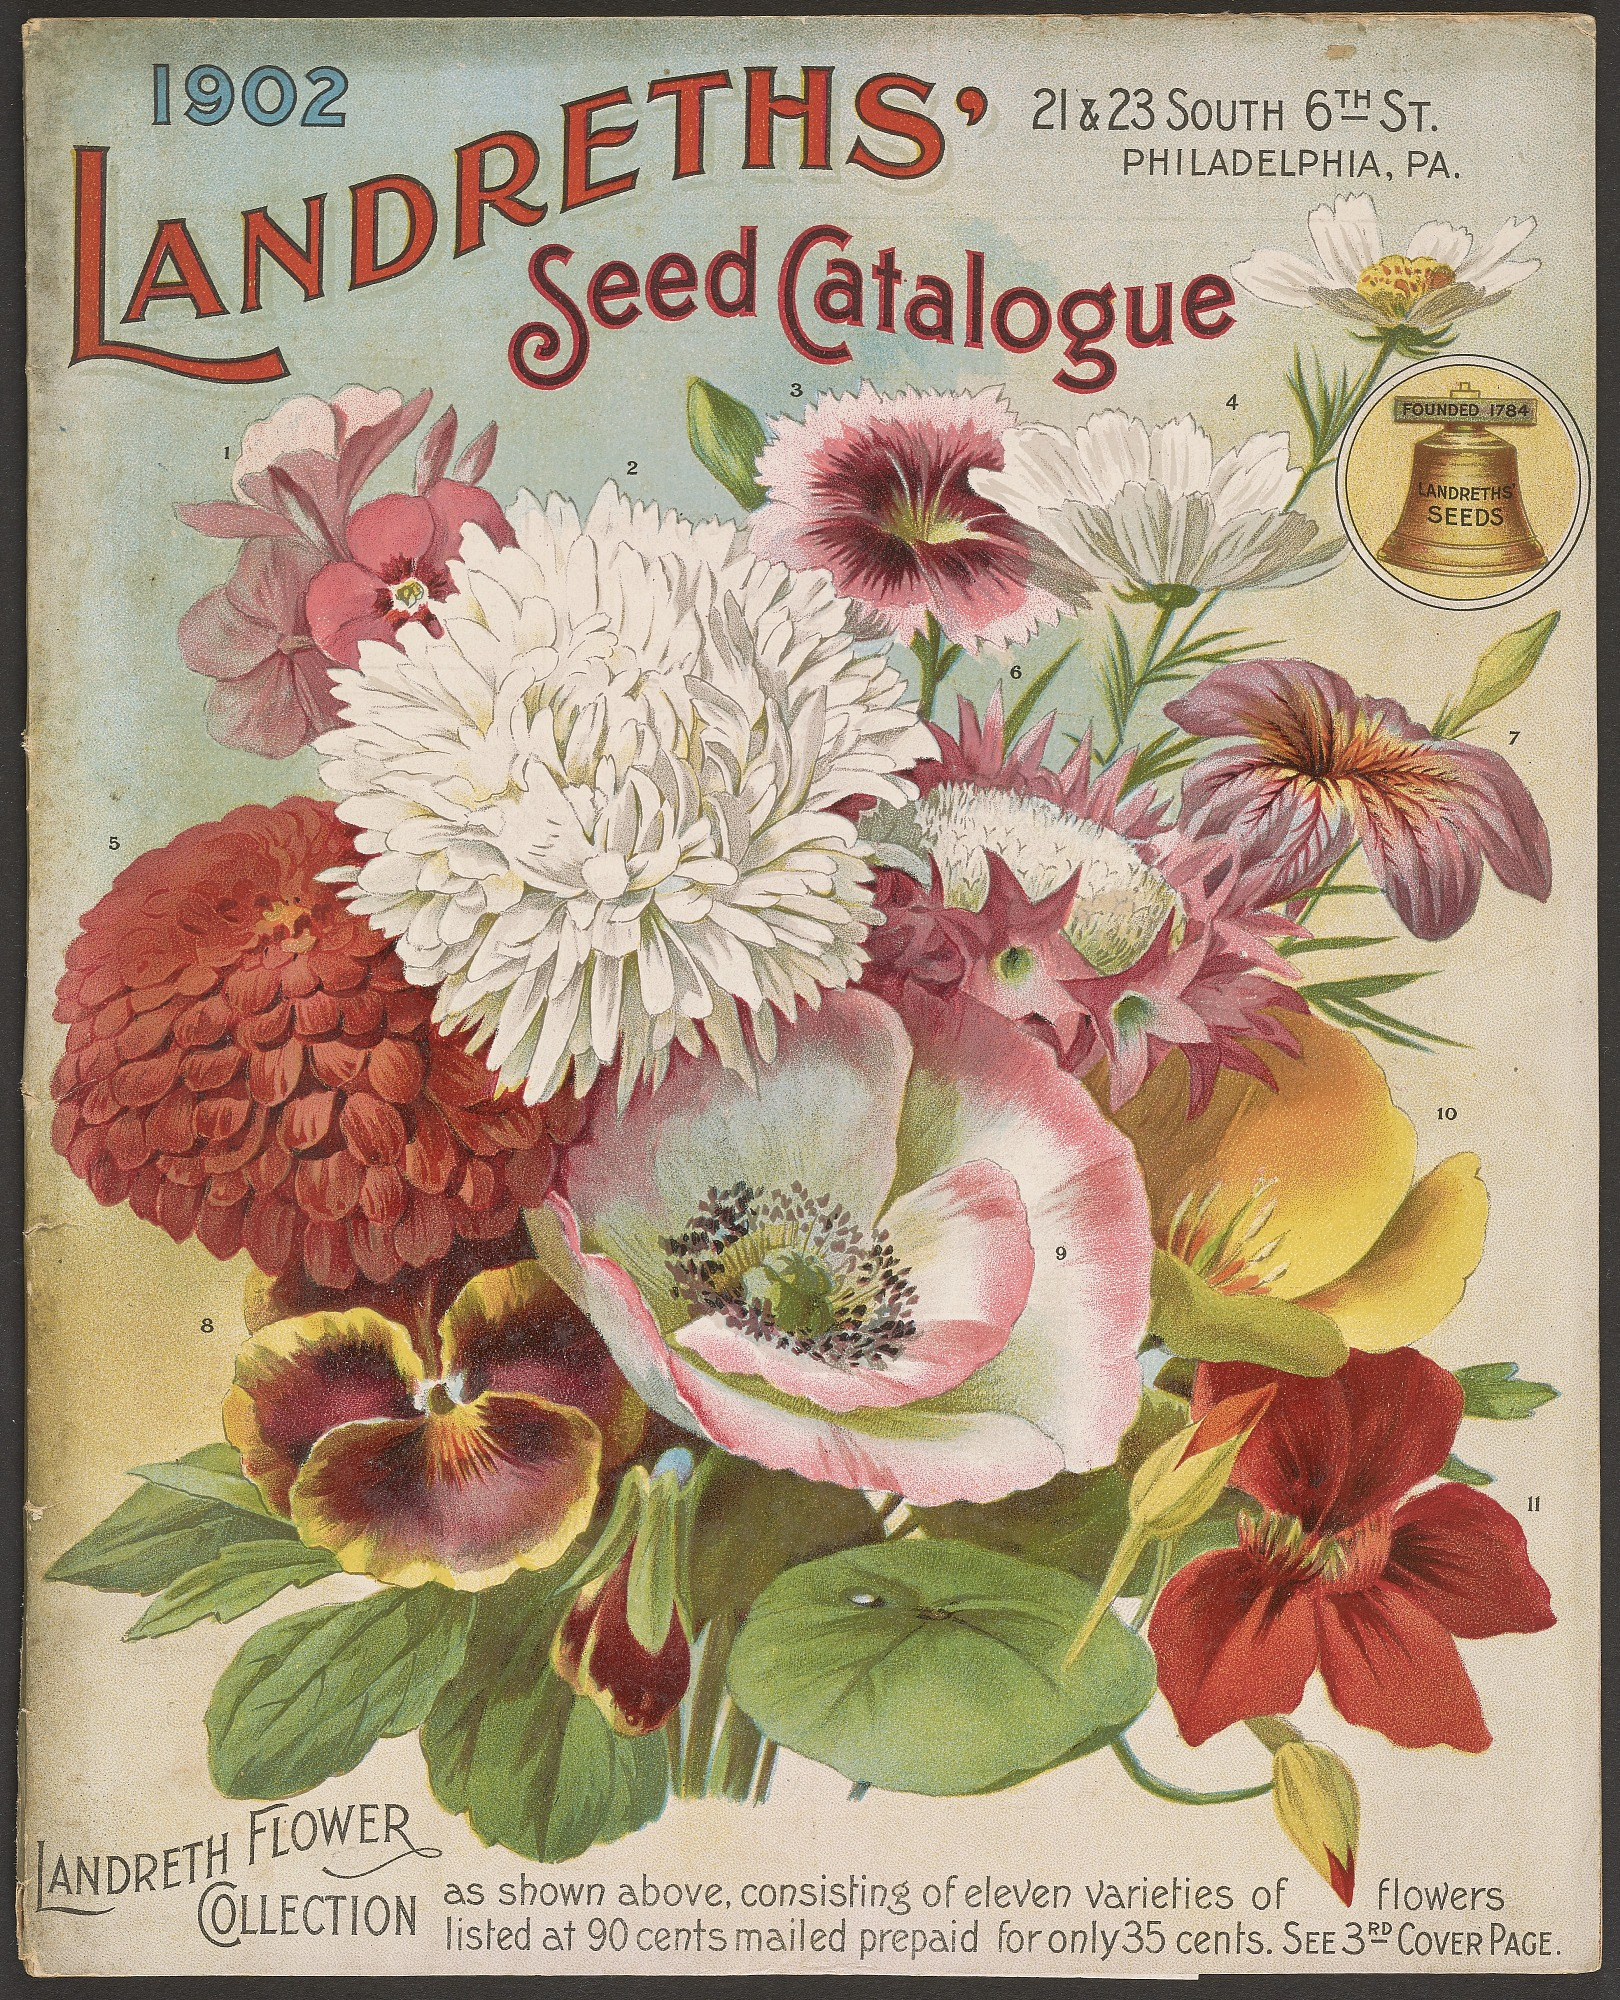 D. Landreth & Sons, Landreth Seeds, 1902